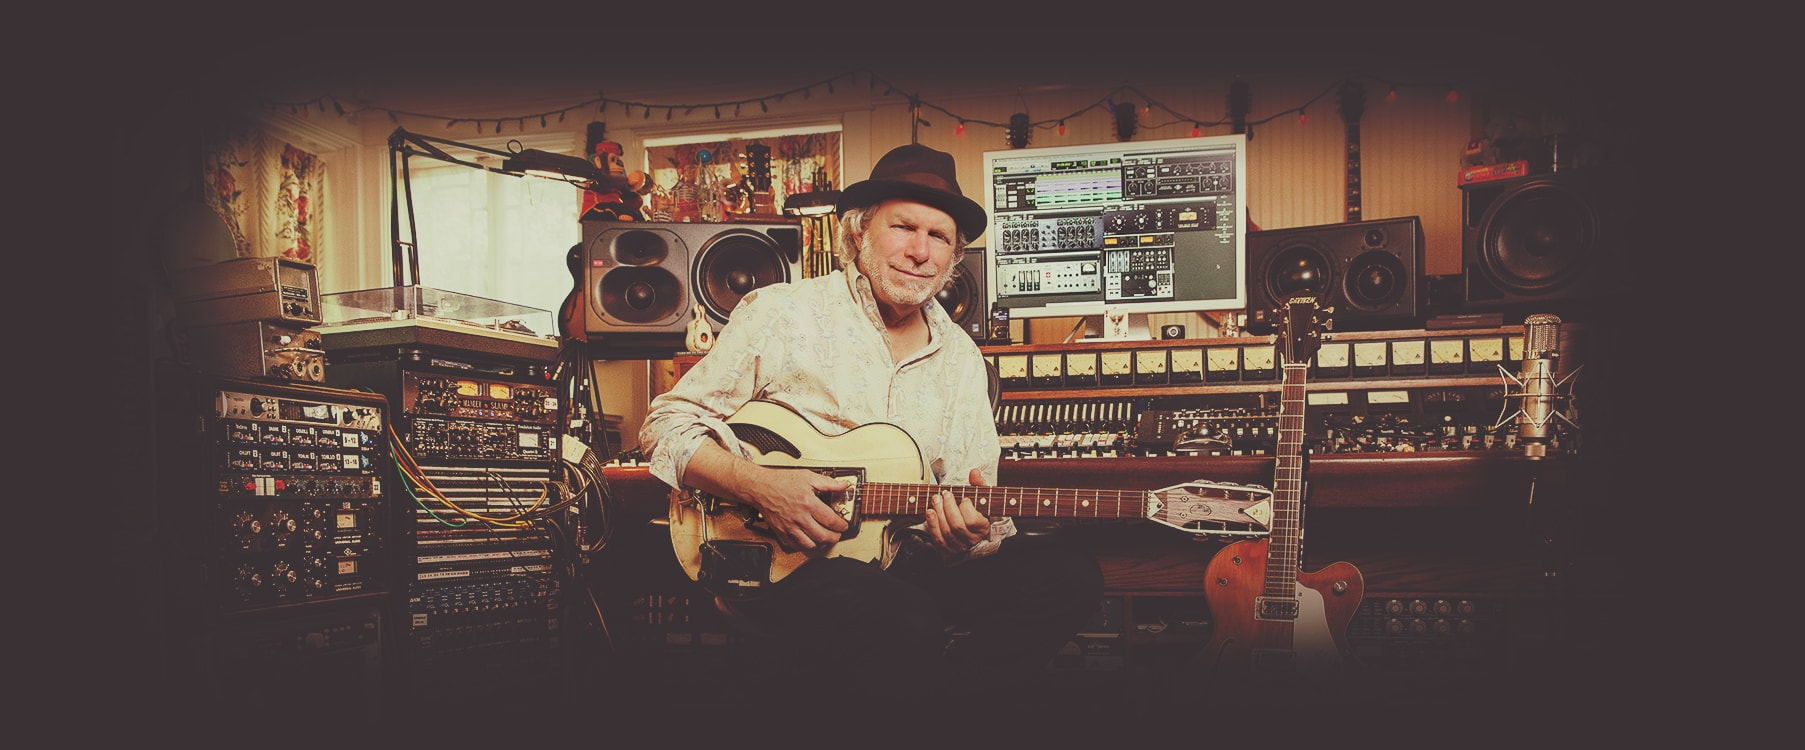 Buddy Miller on Making Records with Apollo and UAD-2 Plug-Ins